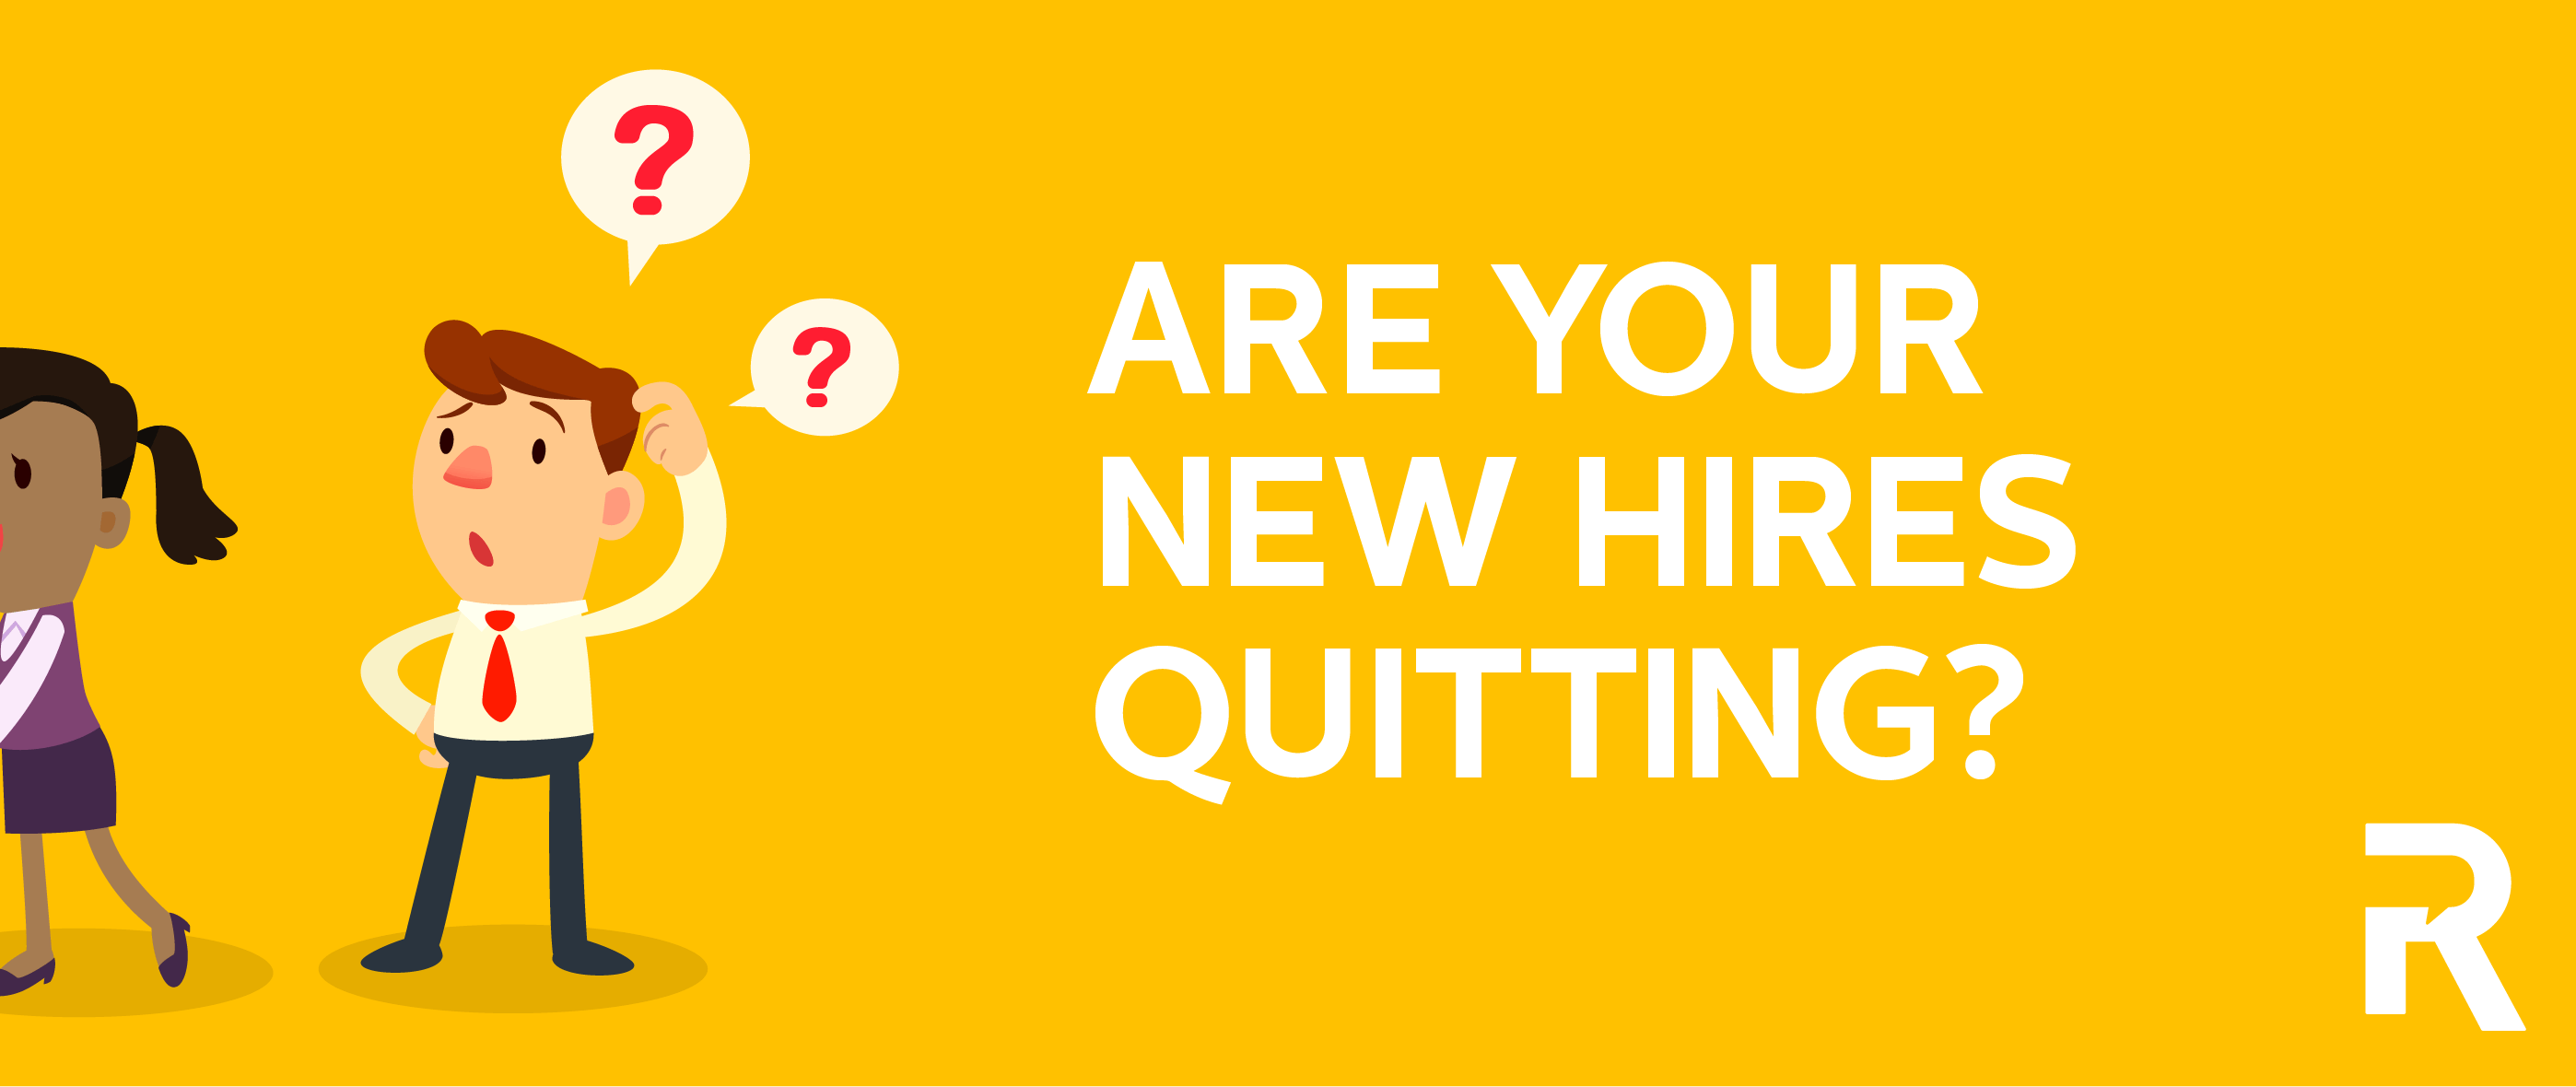 Are Your New Hires Quitting?